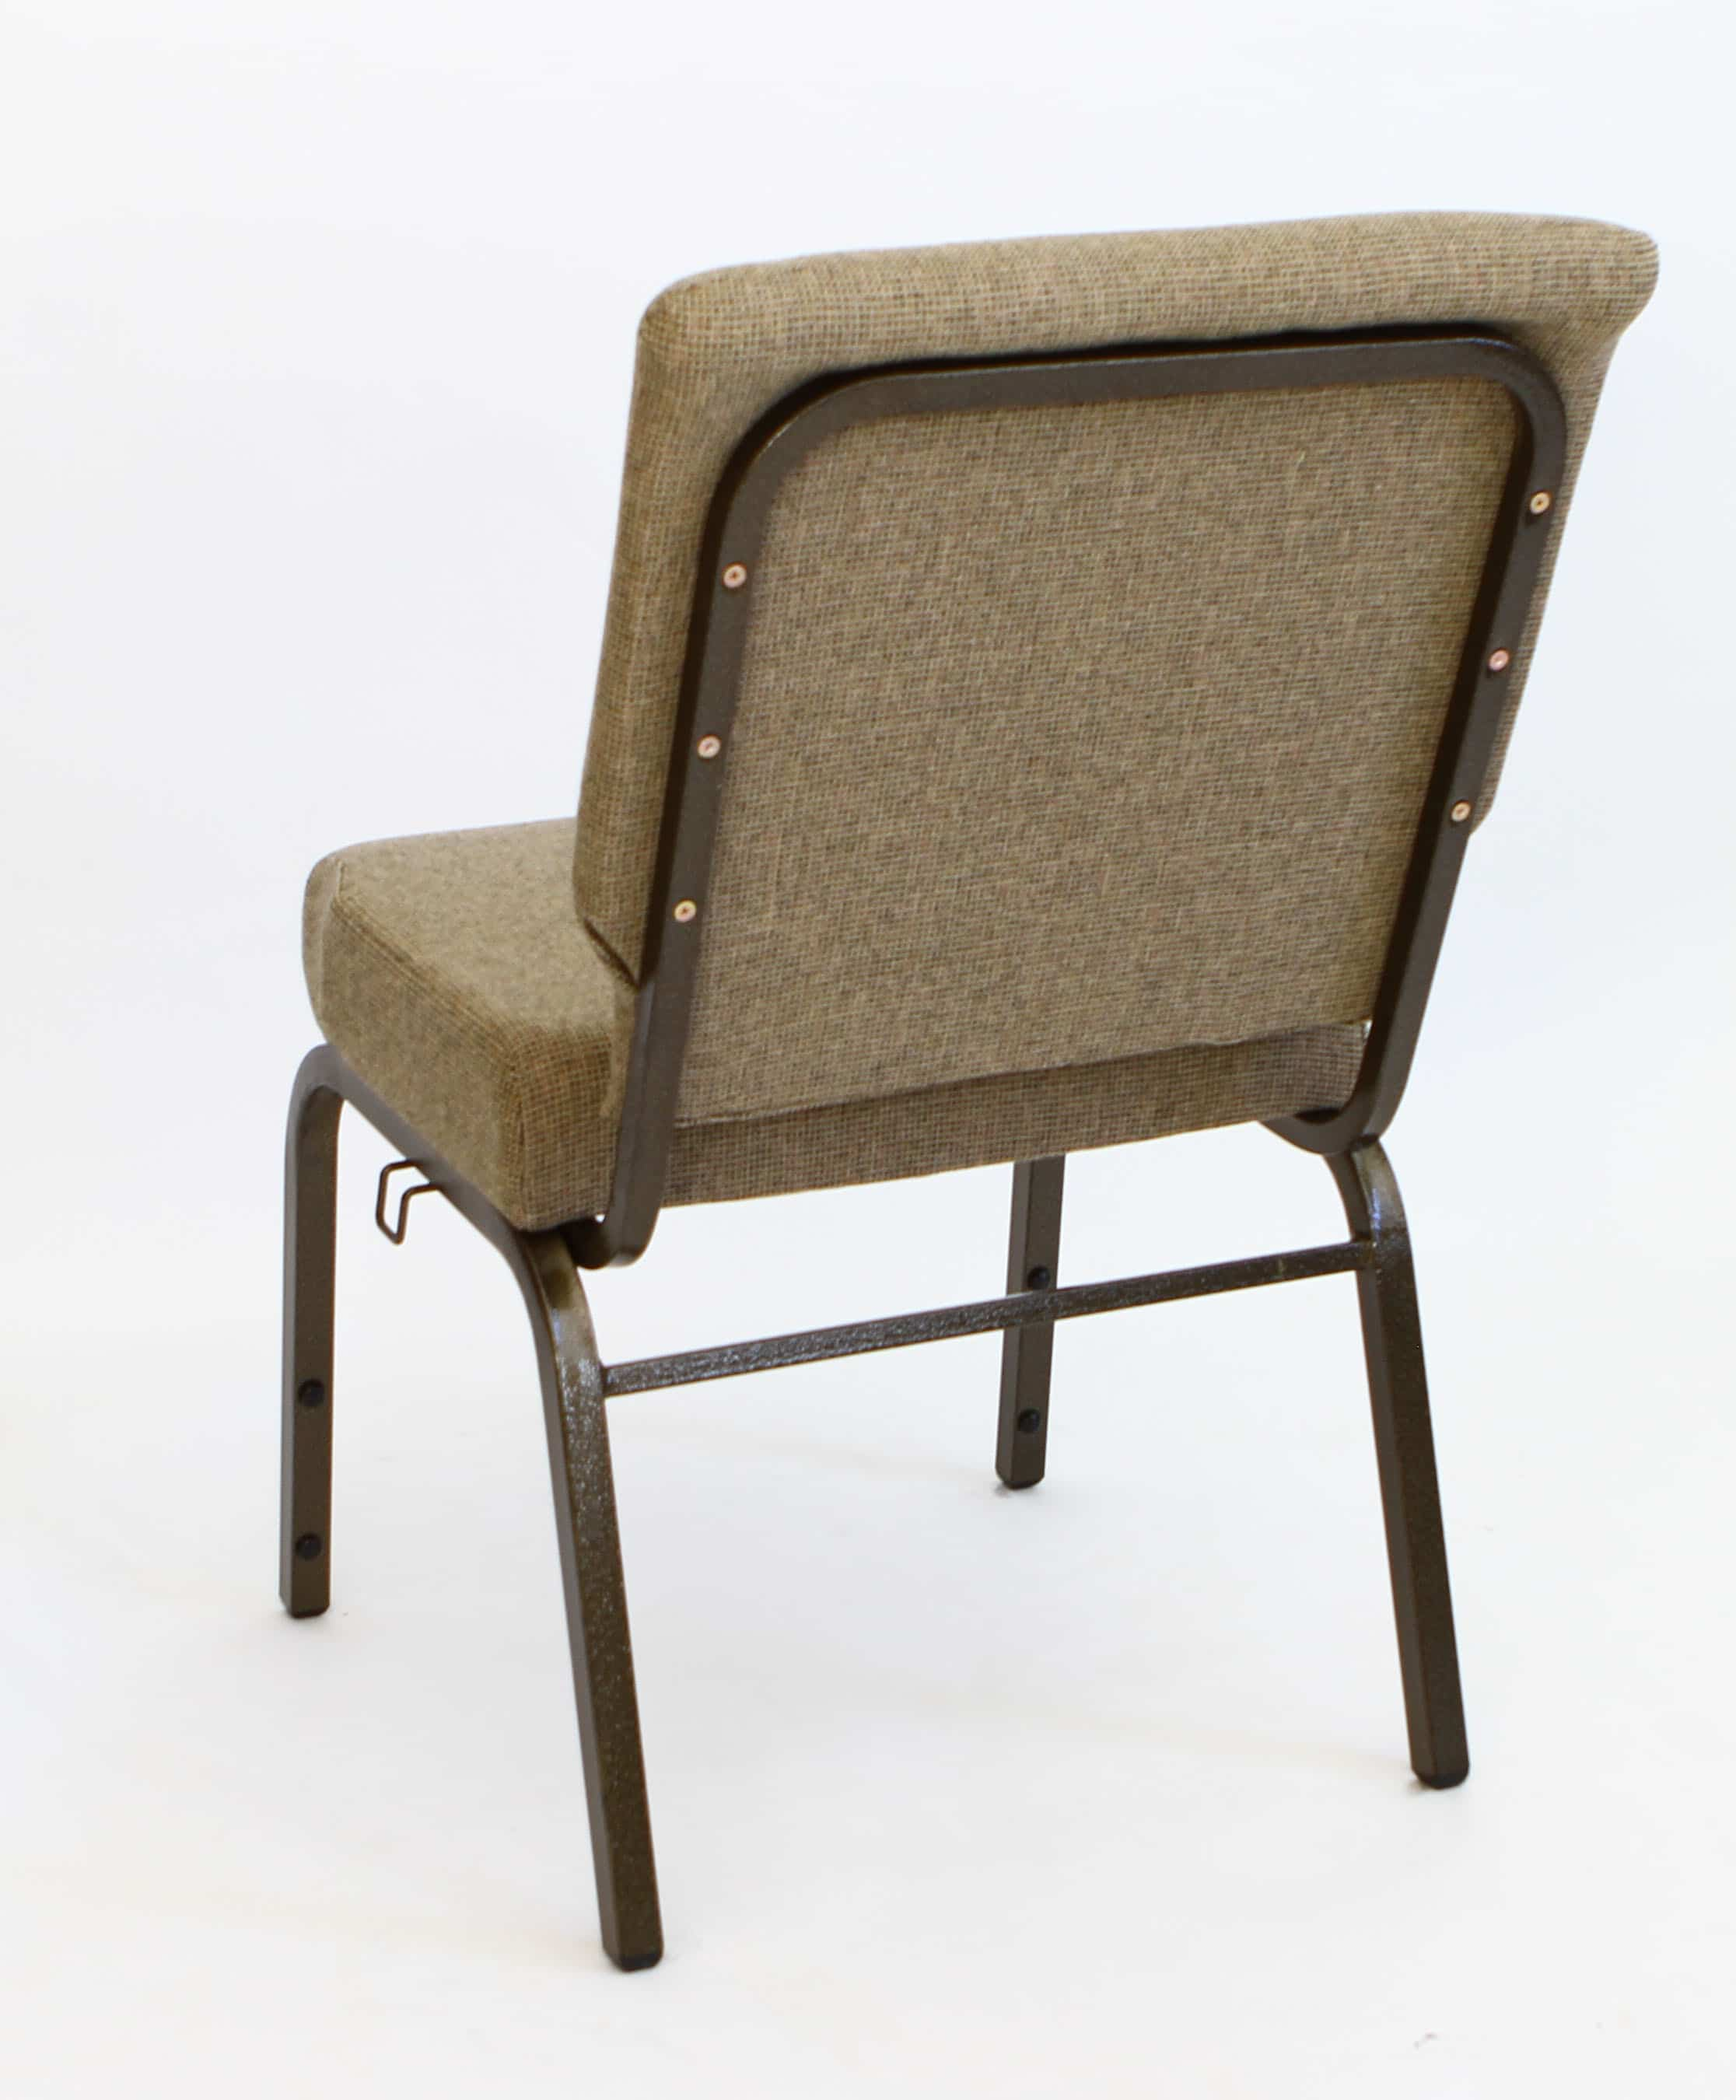 cathedral chairs fishing chair and bag am cc mixed tan 20 inch padded church the